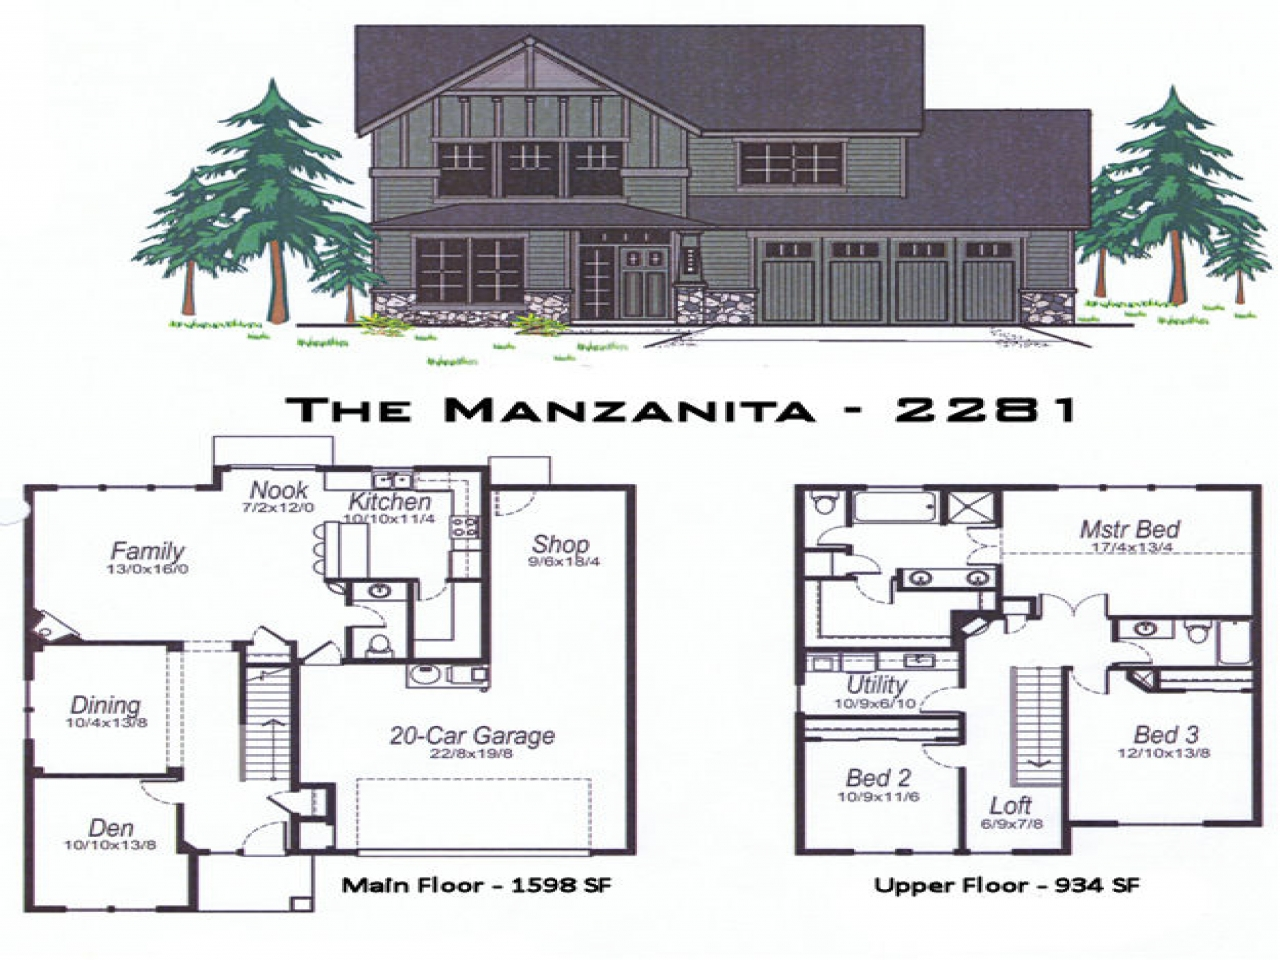 2500 sq ft square house plans 2500 sq ft floor plans for 2500 square ft house plans